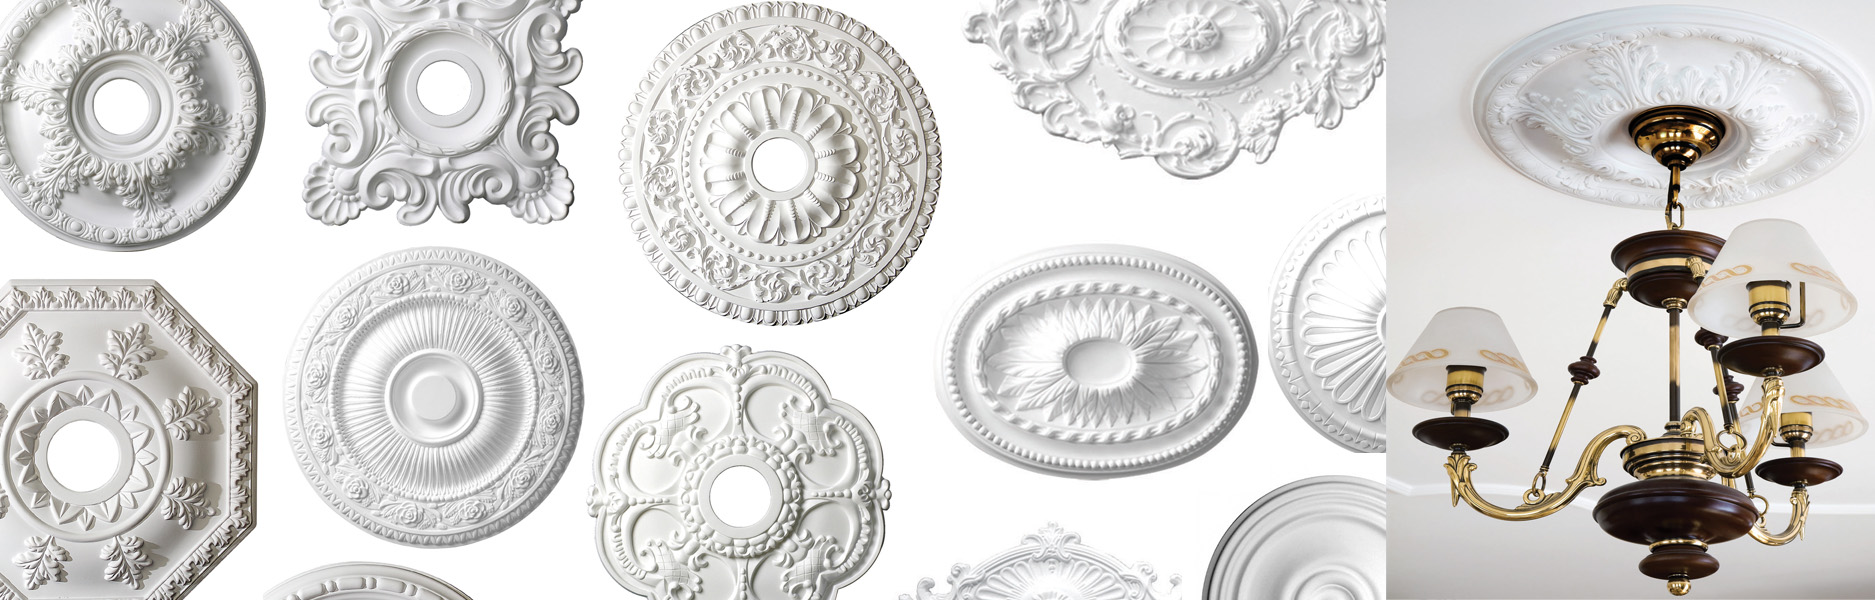 Polyurethane Ceiling & Wall Medallions from GlideRite Hardware